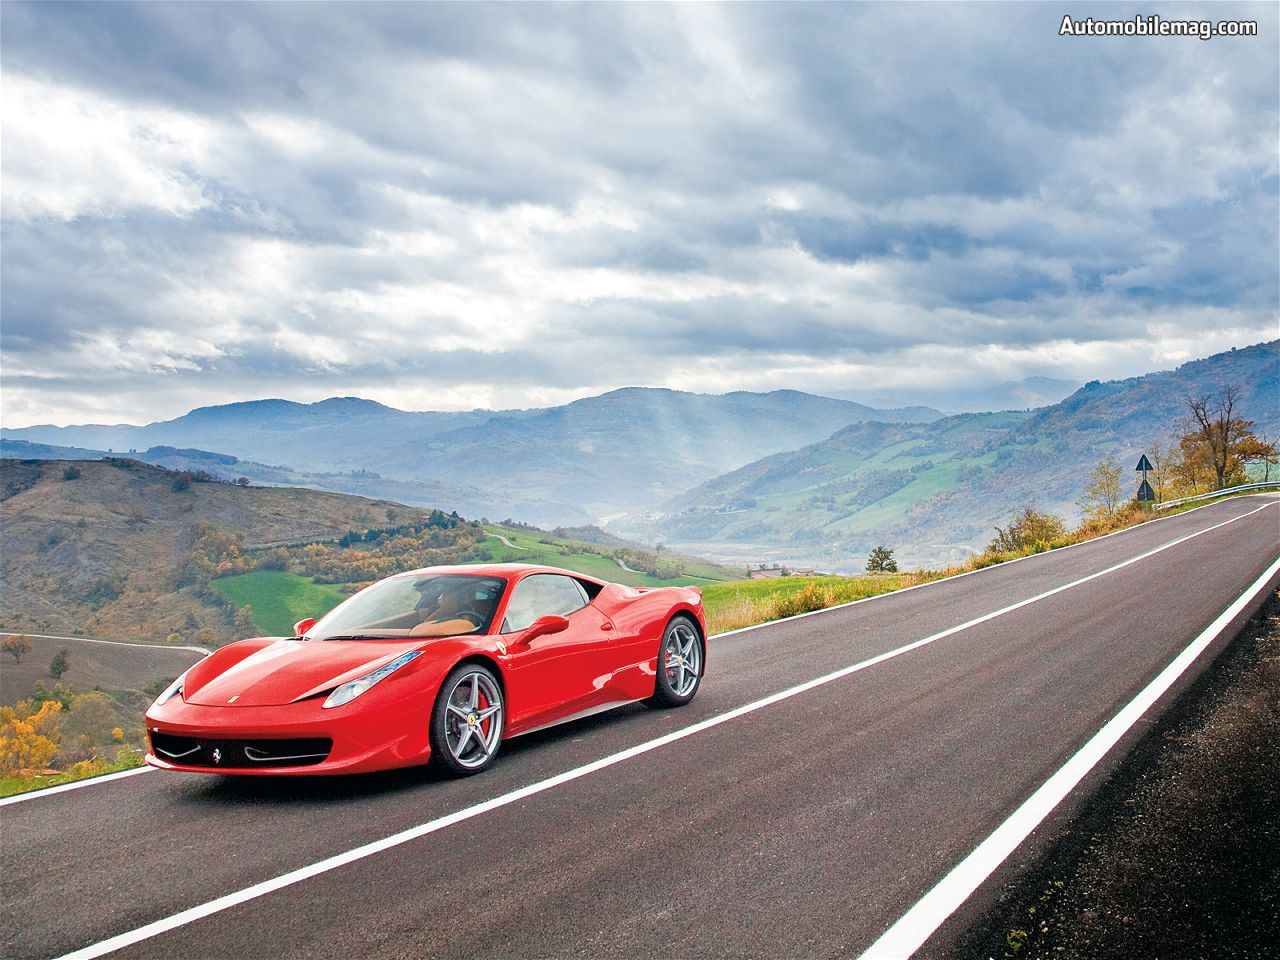 Ferrari road cars are Used as a symbol of luxury and wealth 1280x960